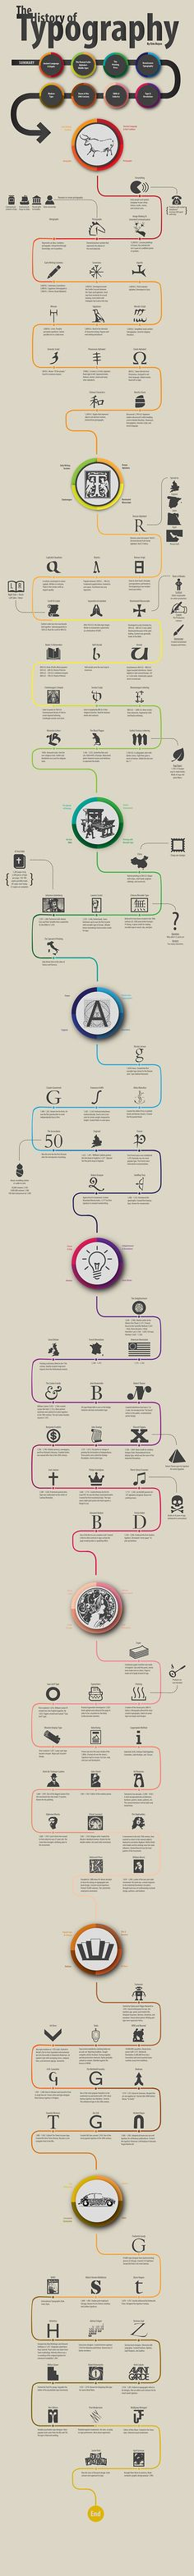 Scrolling Infographic: History of Typography on Behance